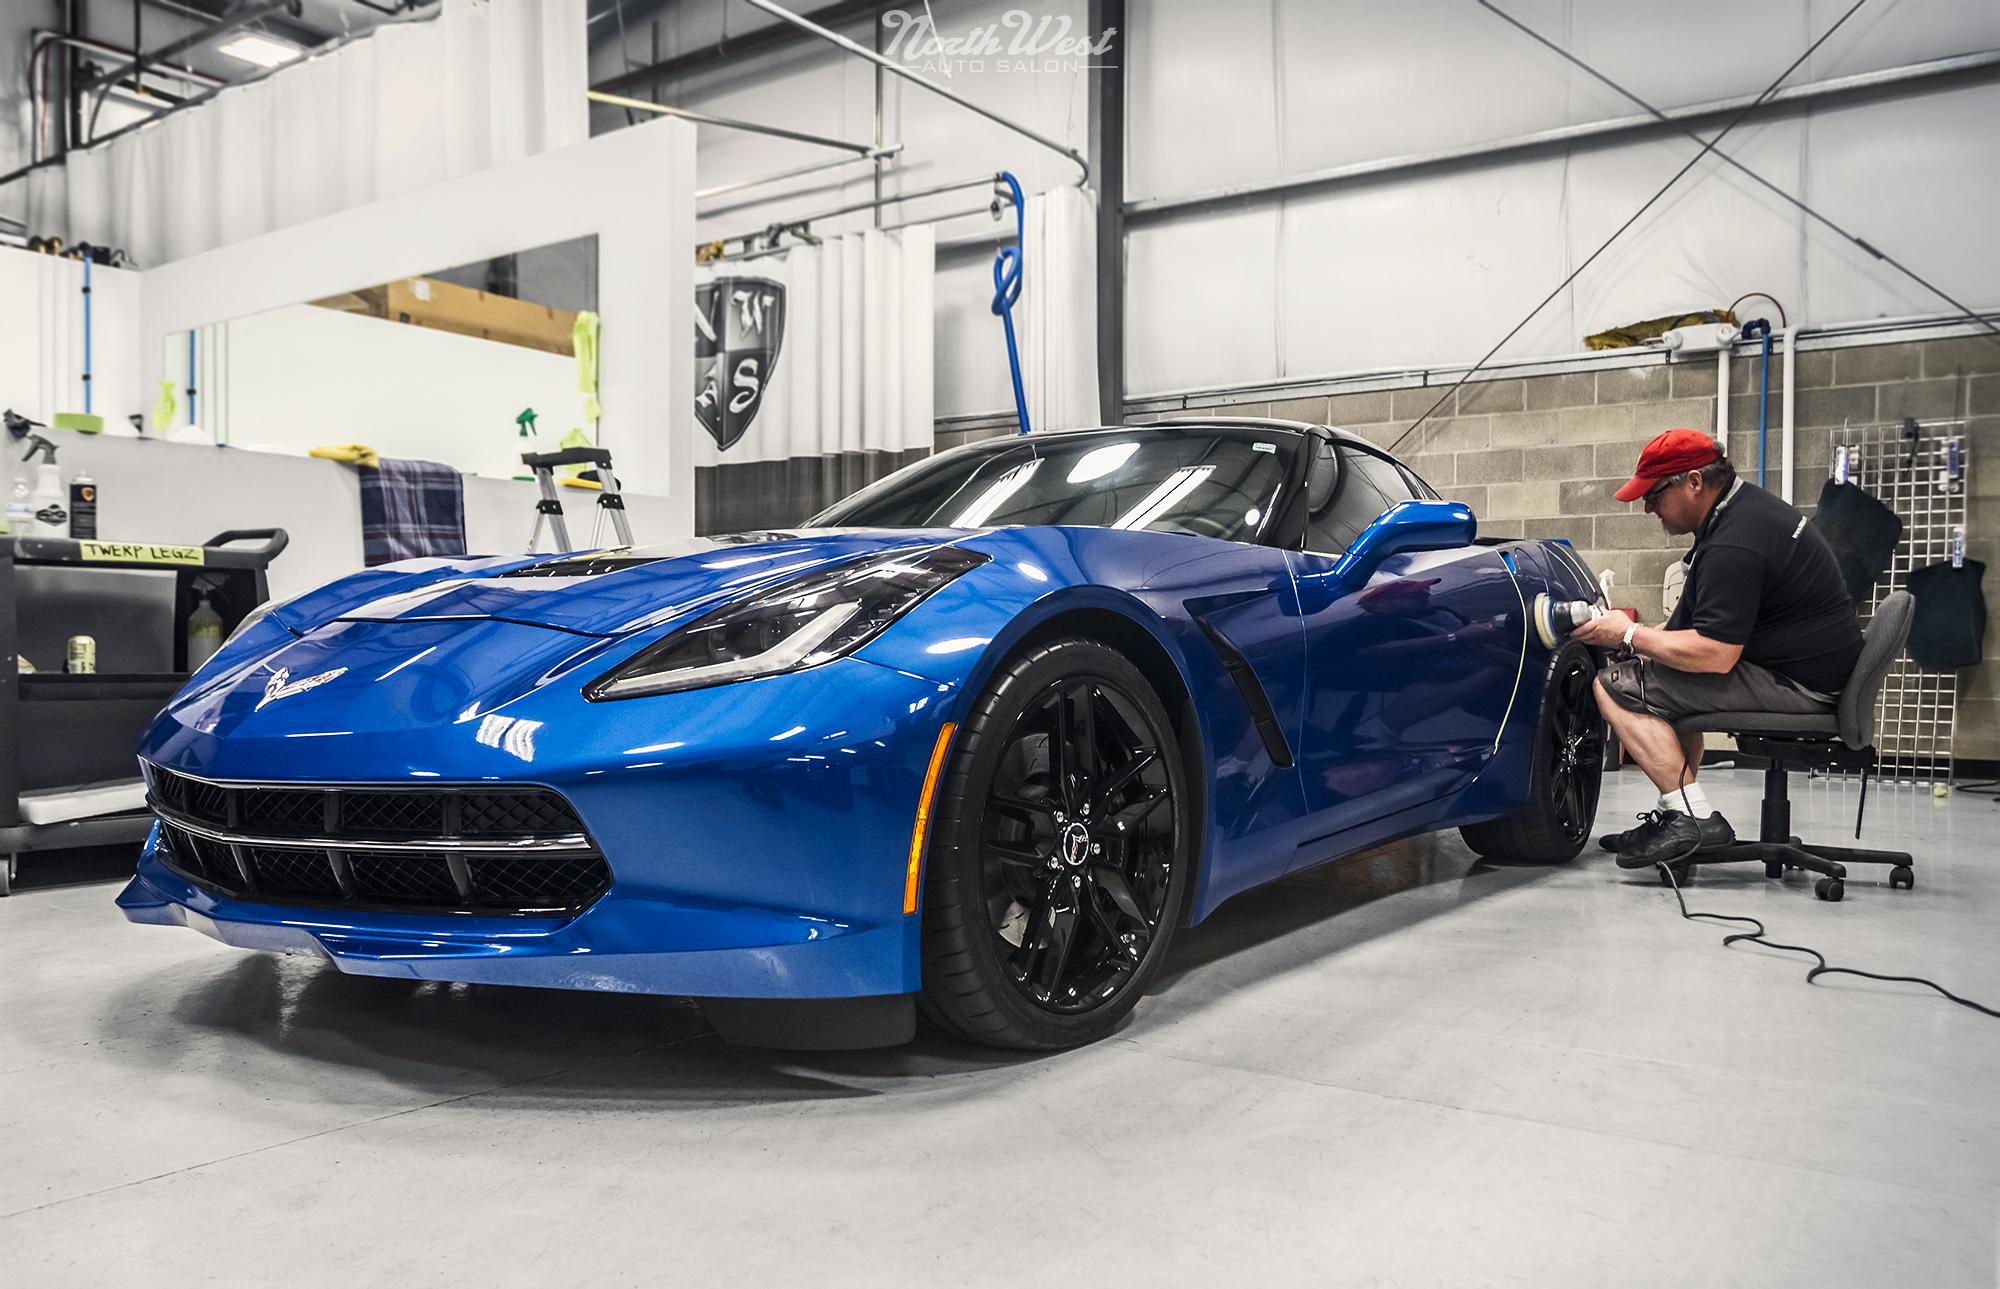 c7 corvette stingray new car detail gtechniq northwest